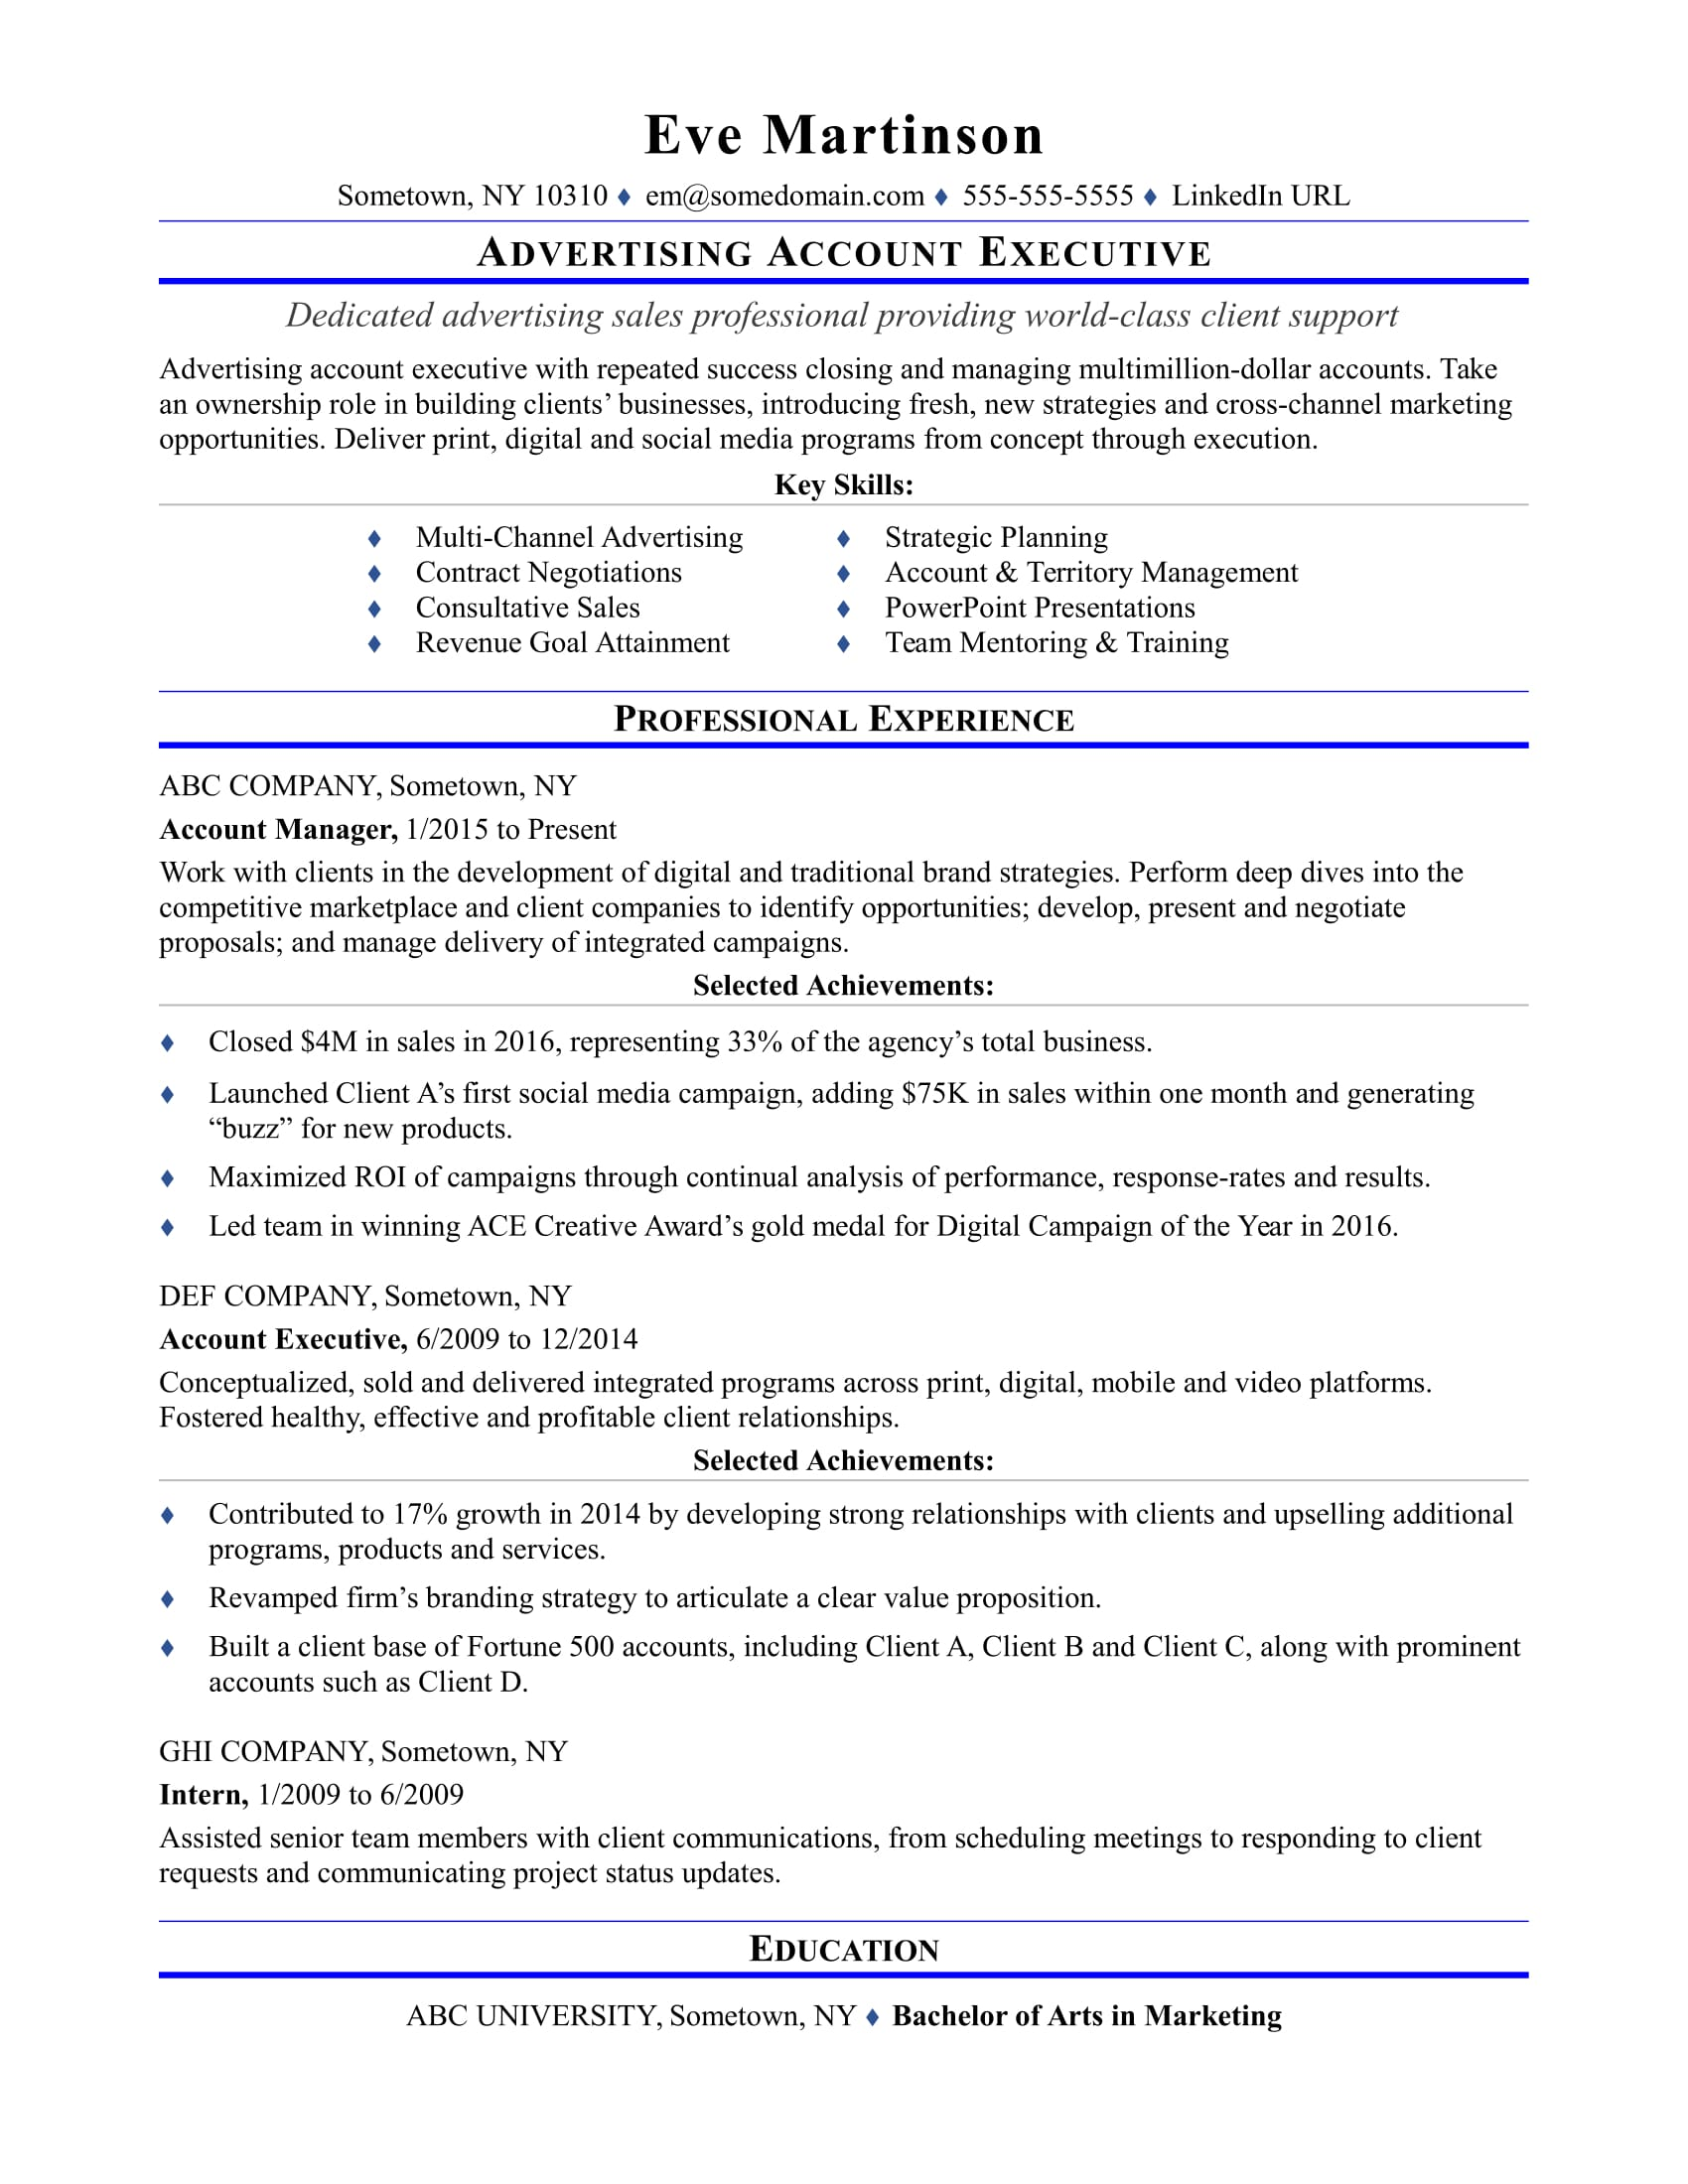 sample resume for an advertising account executive monster manager public speaking Resume Executive Account Manager Resume